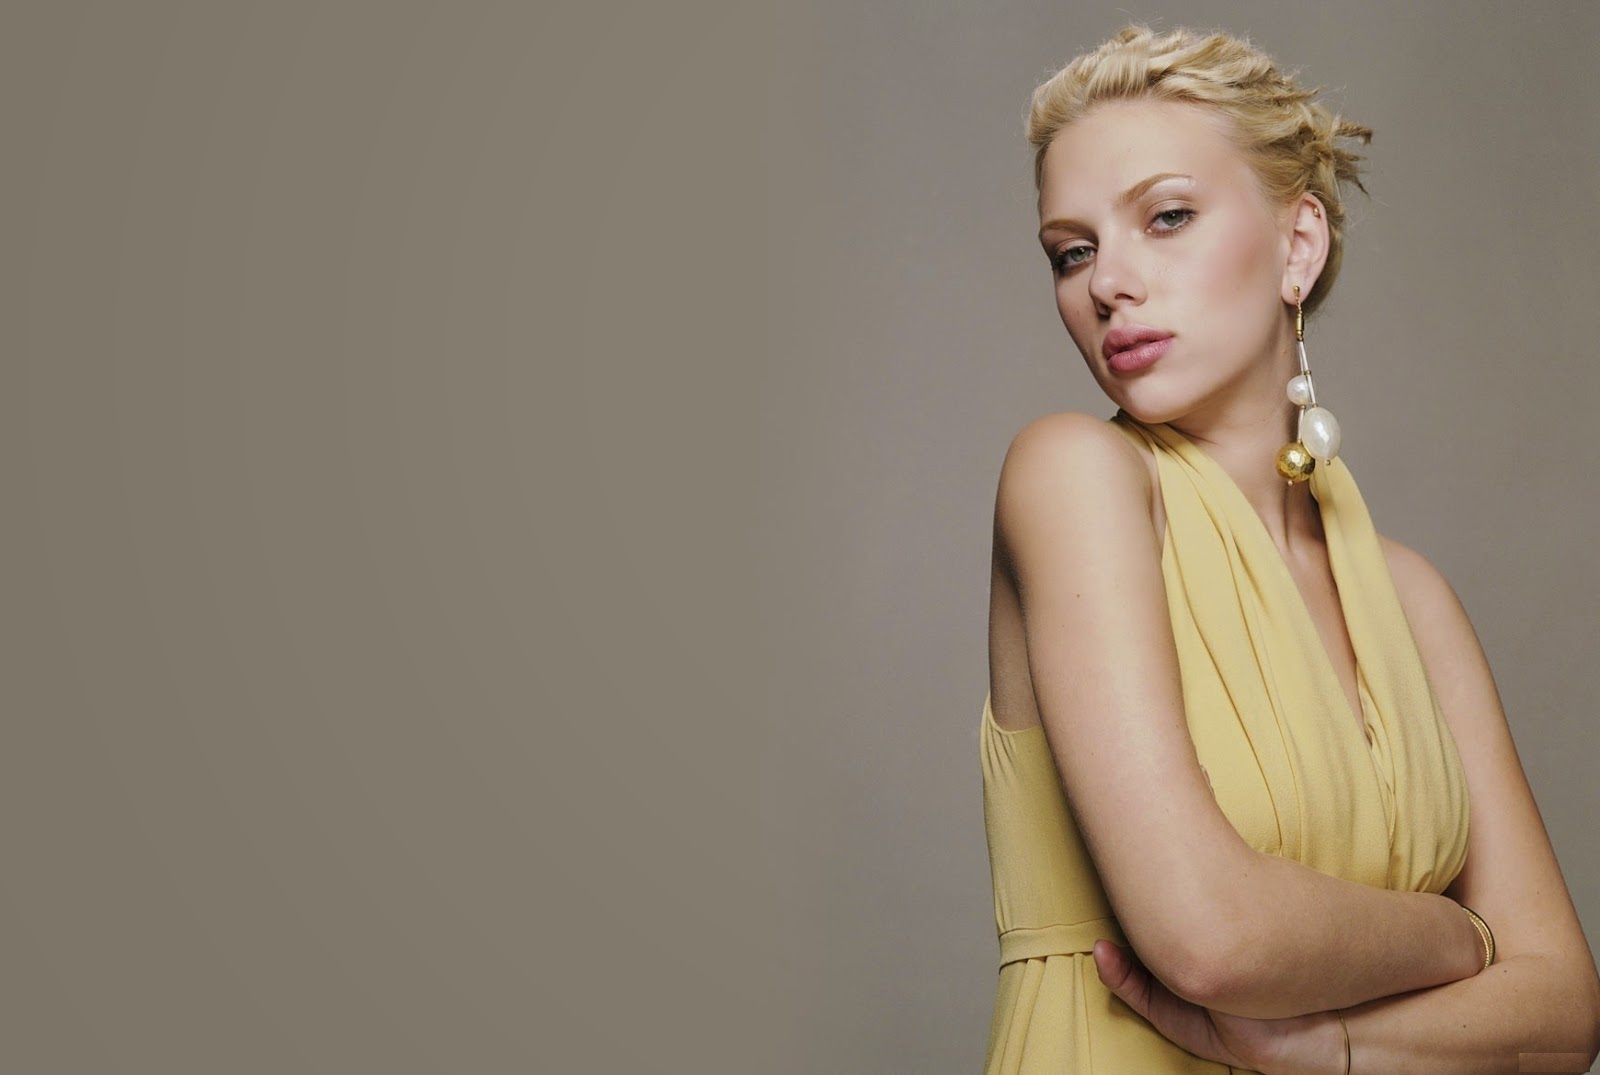 Scarlett johansson profile and new hd wallpapers 2013 14 world celebrities hd wallpapers - Celebrity background ...